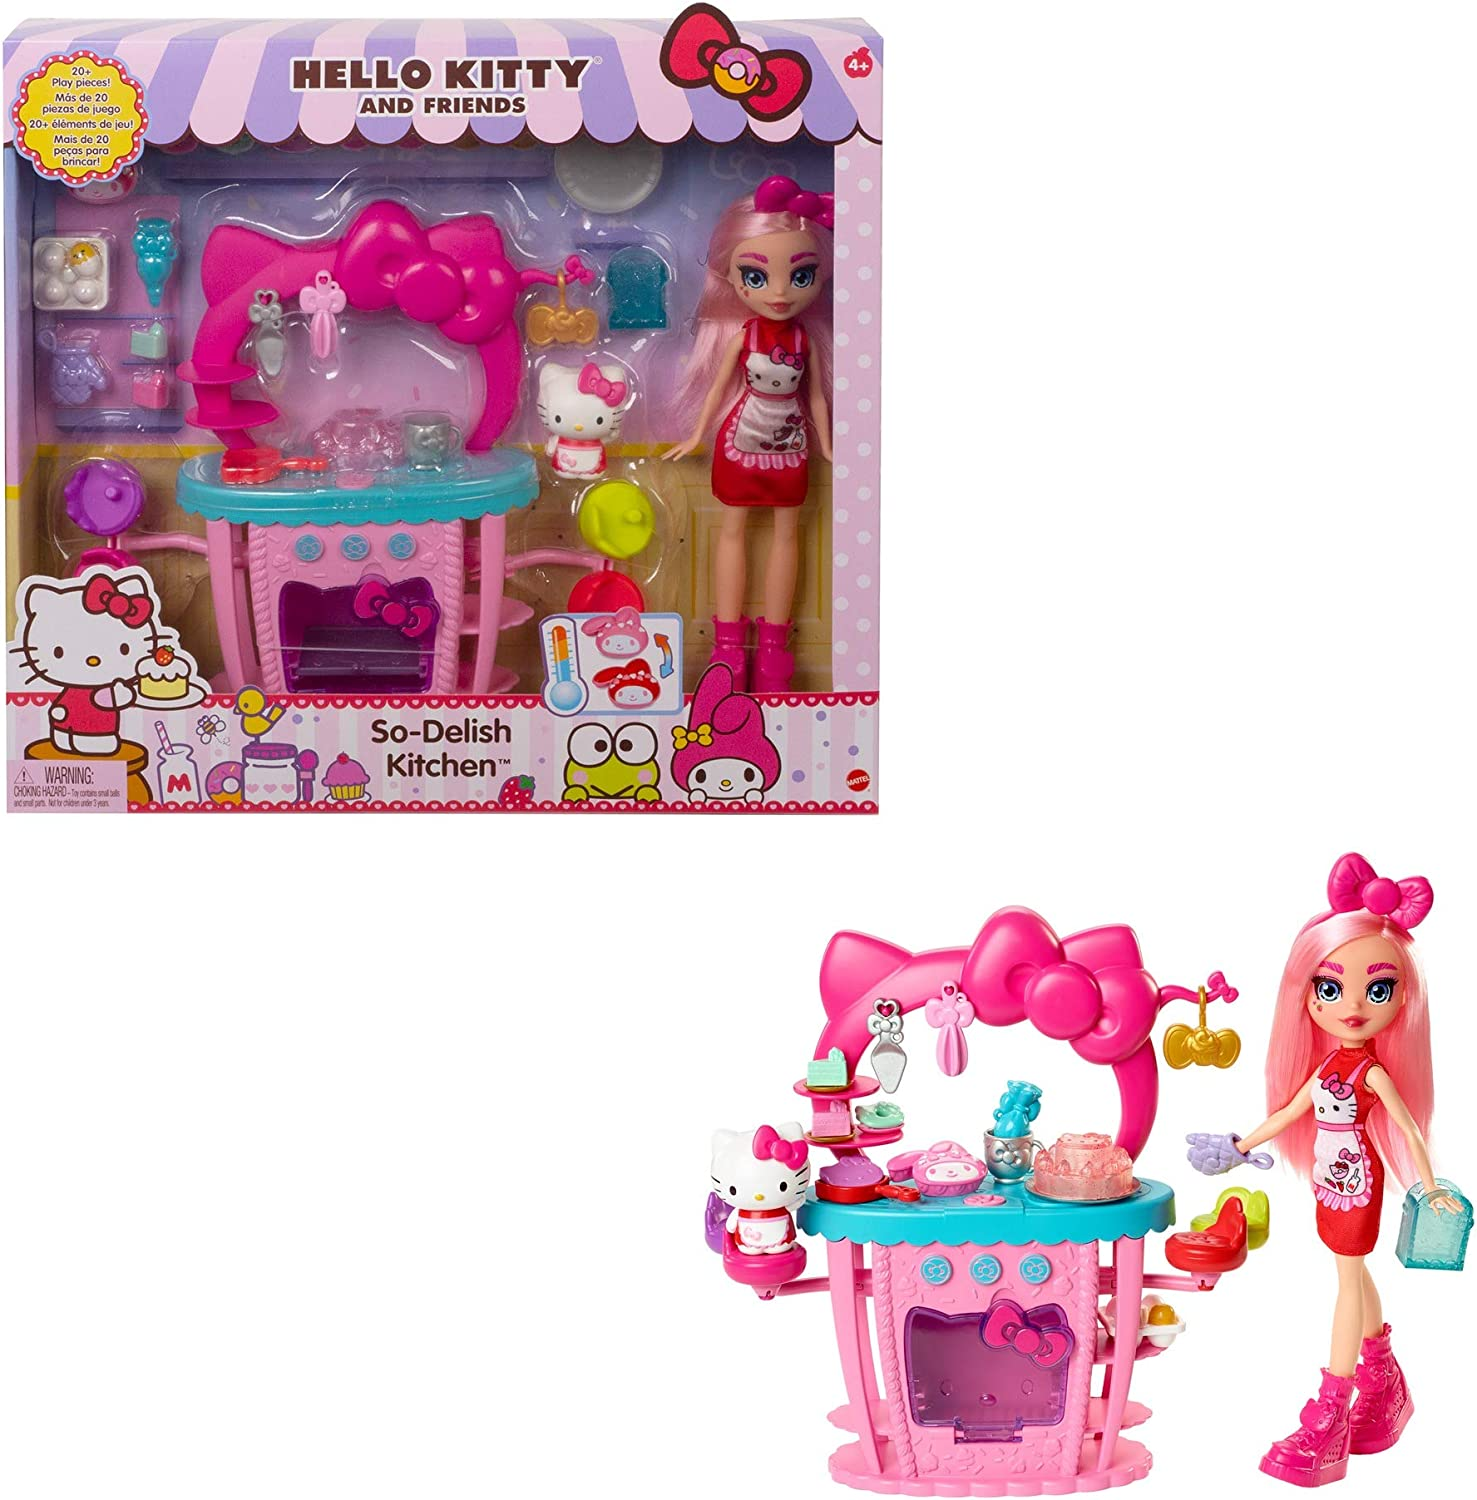 Mattel Hello Kitty and Friends So-Delish Kitchen Playset, Hello Kitty and Éclair Doll (10-in) with 25 Accessories, Great Gift for Kids Ages 4Y+